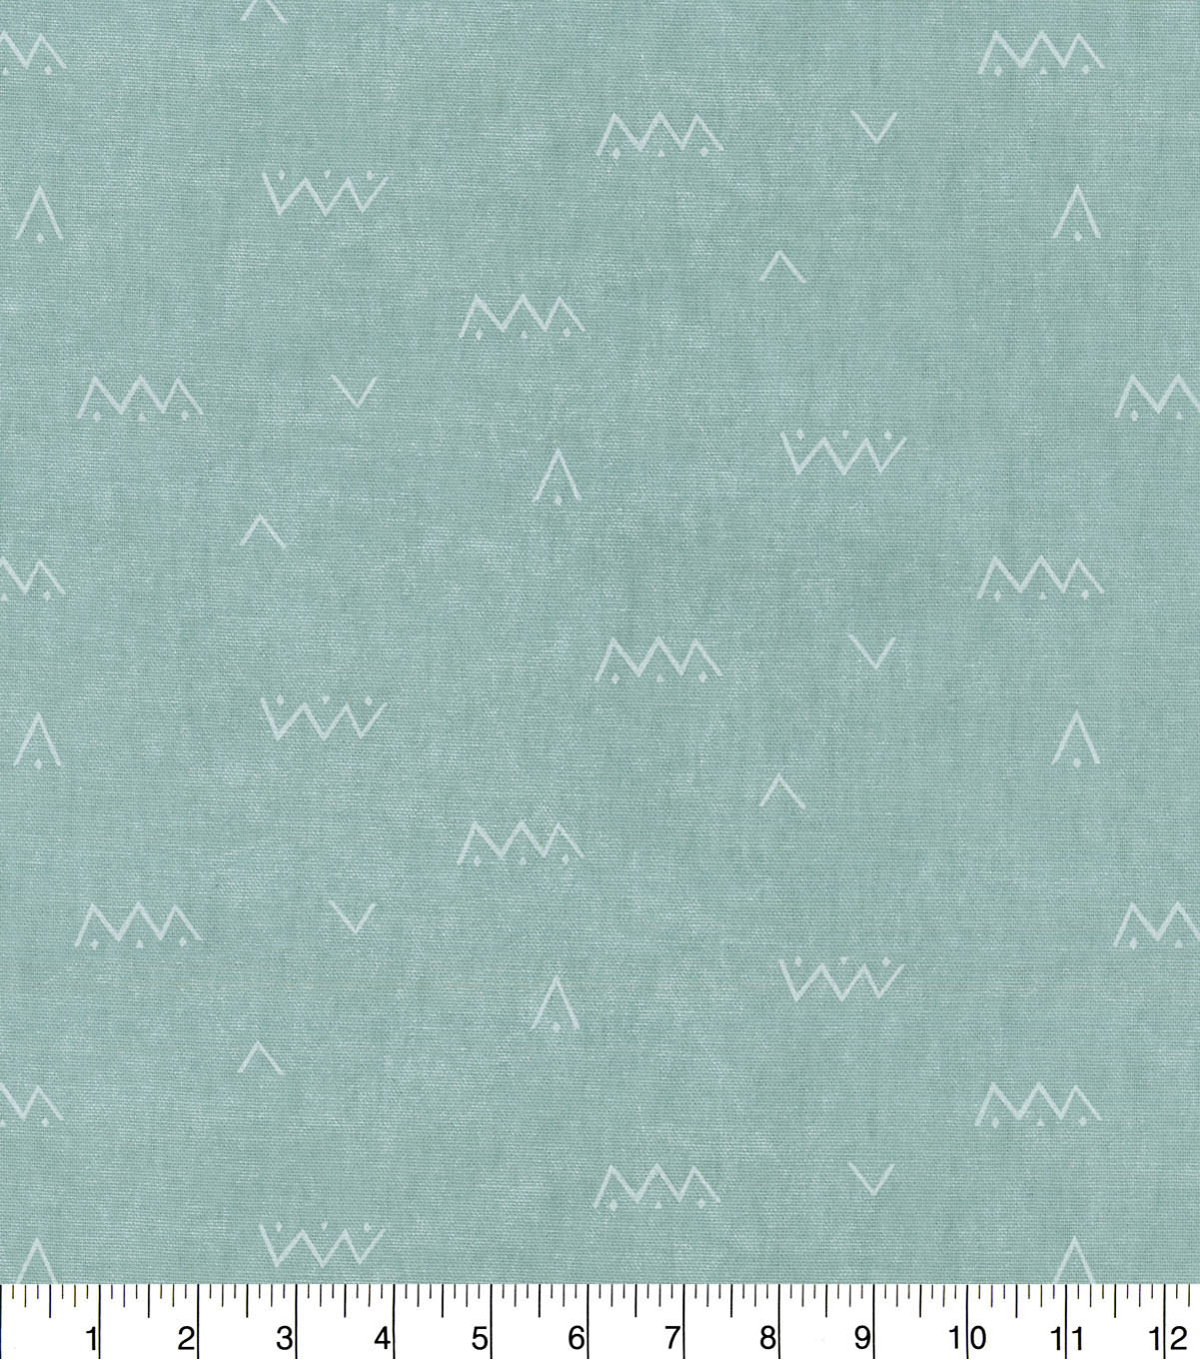 Waverly Upholstery Décor Fabric 9\u0022x9\u0022 Swatch-Arrow Solid Seaglass